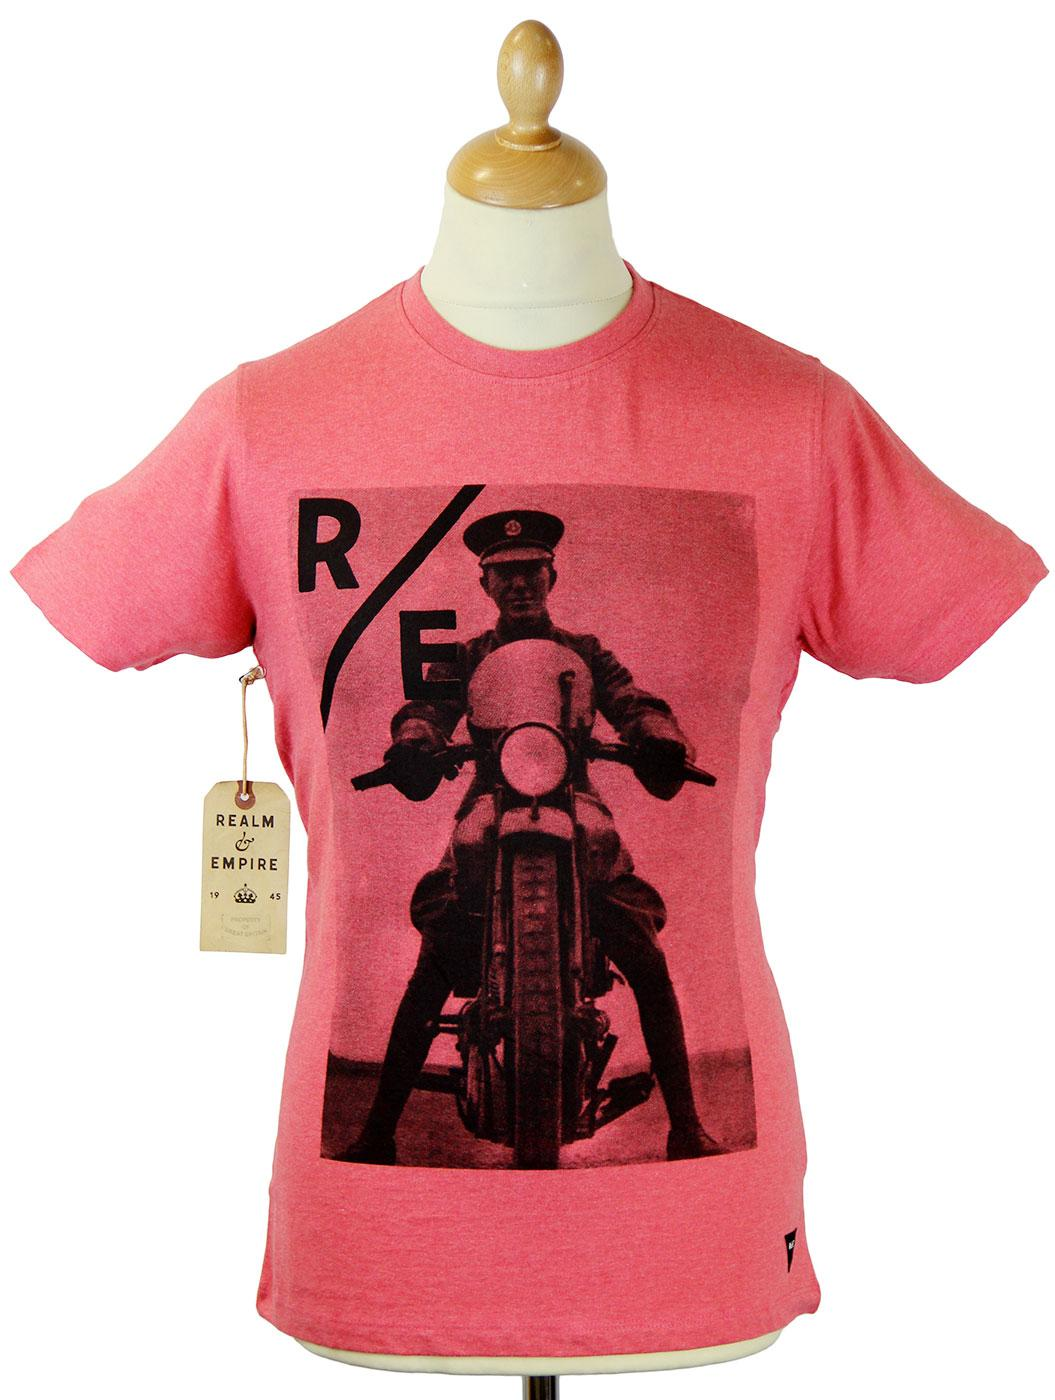 Lawrence REALM & EMPIRE Retro WWI Photo T-Shirt CR